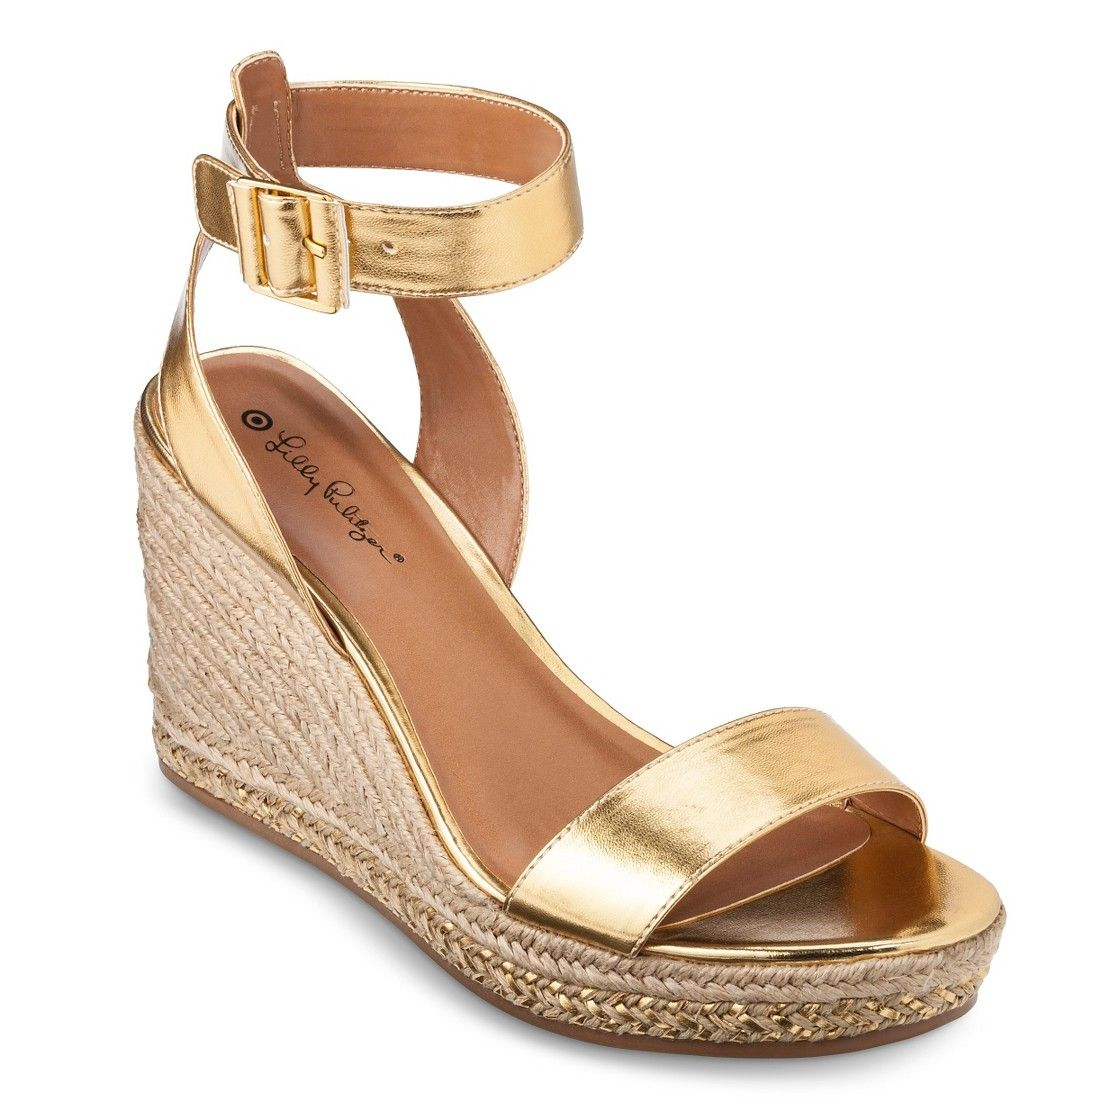 63f28f8bcb4e Lilly Pulitzer for Target Women s Wedge Espadrille Sandals - Gold ...